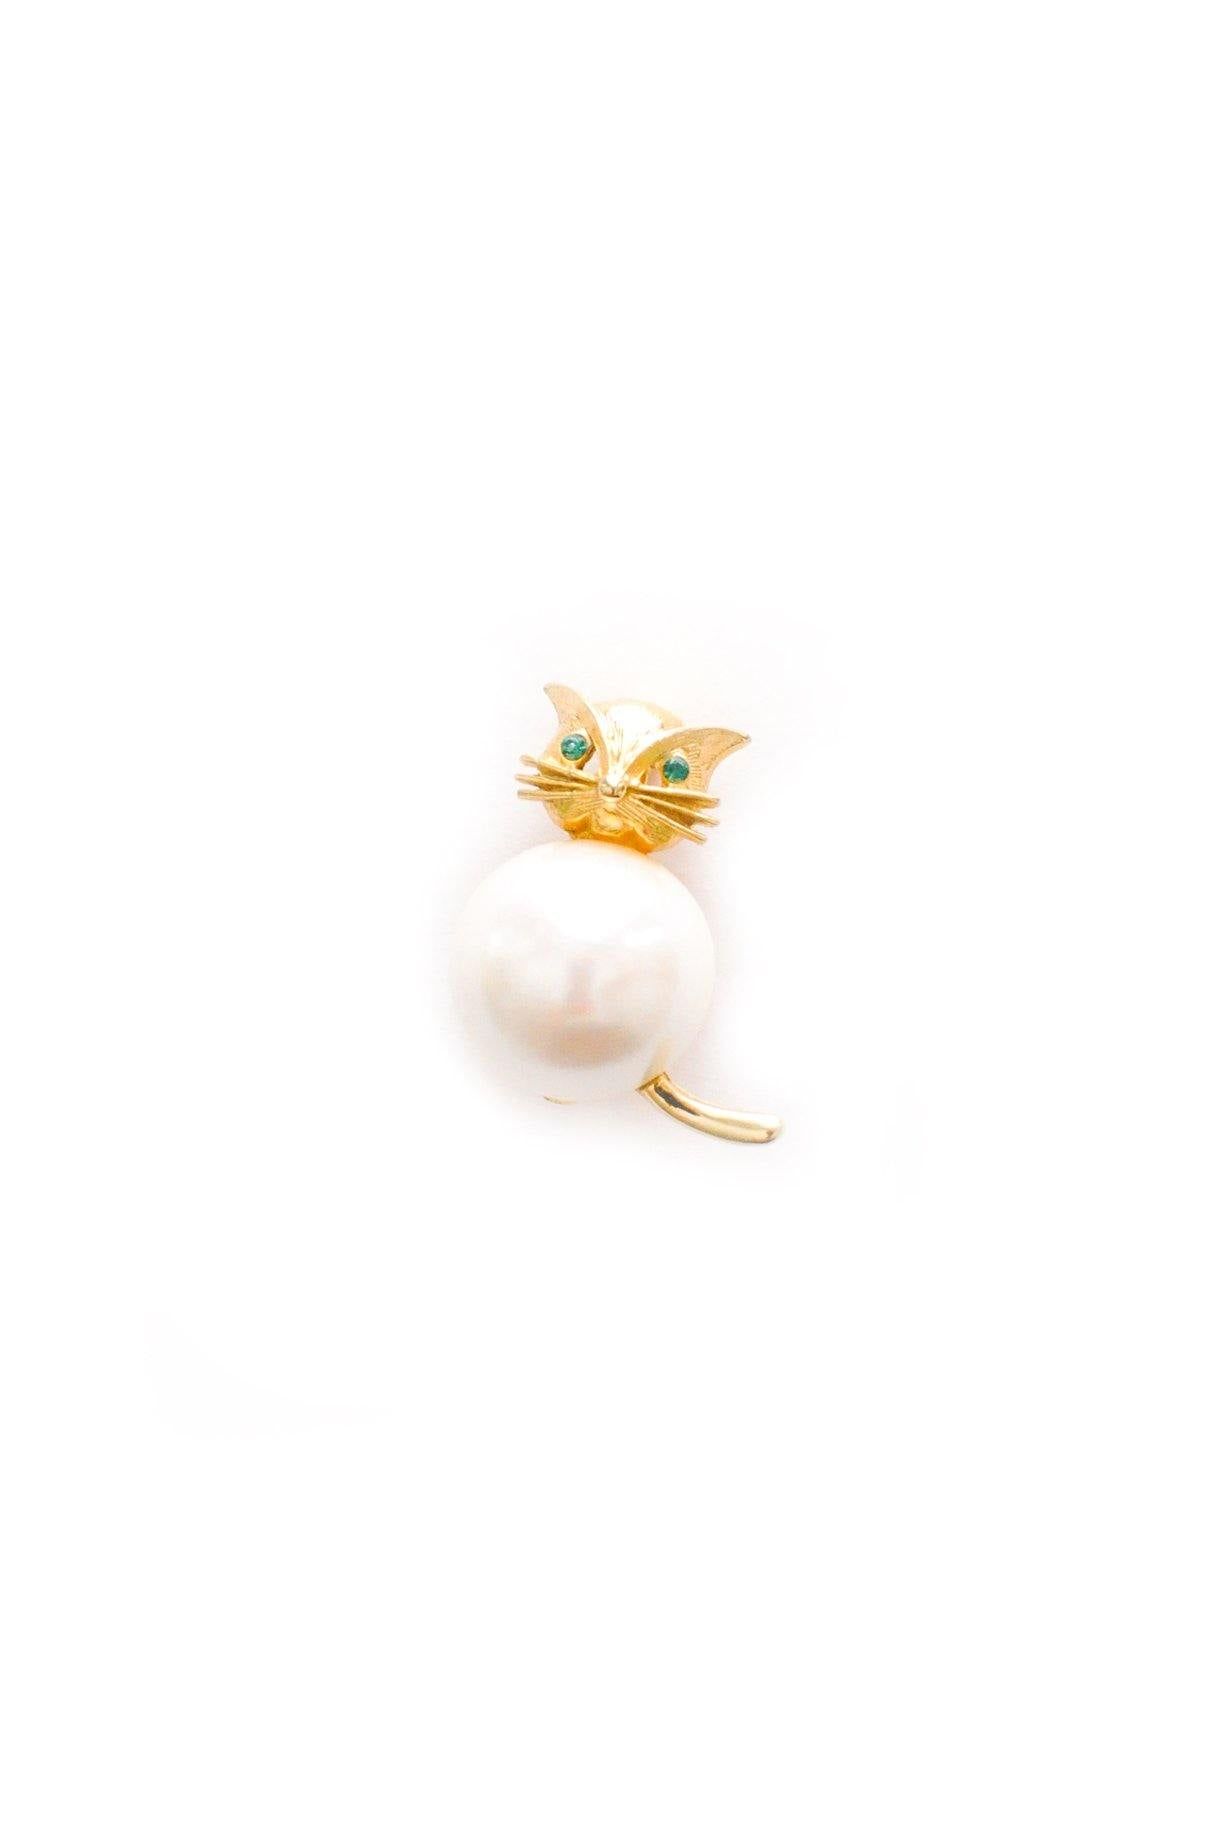 Pearl cat brooch from Sweet & Spark.